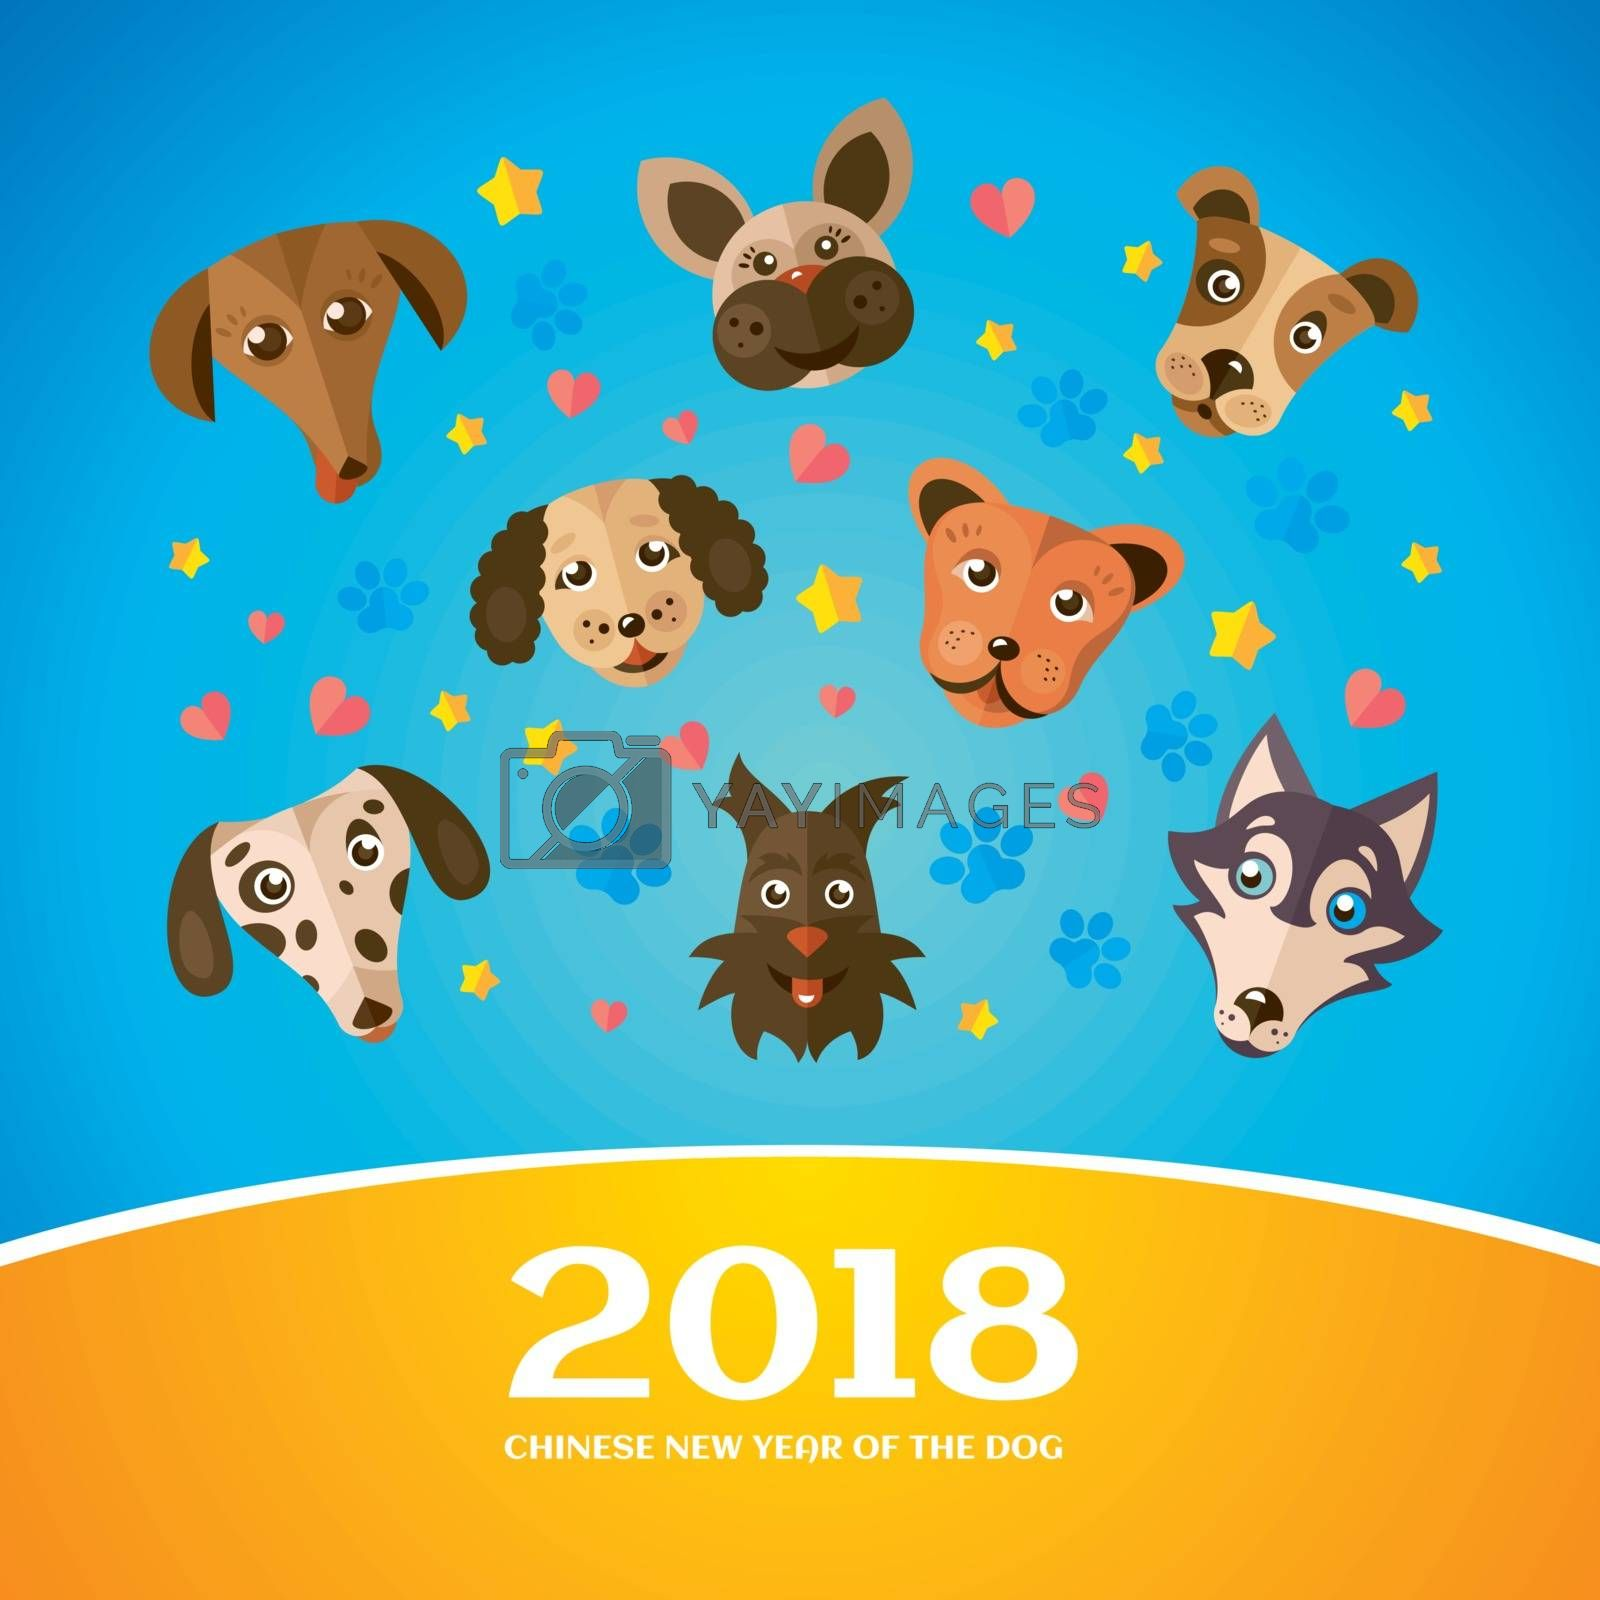 Chinese New Year Greeting Card. 2018 Year of The Dog. Vector illustration.